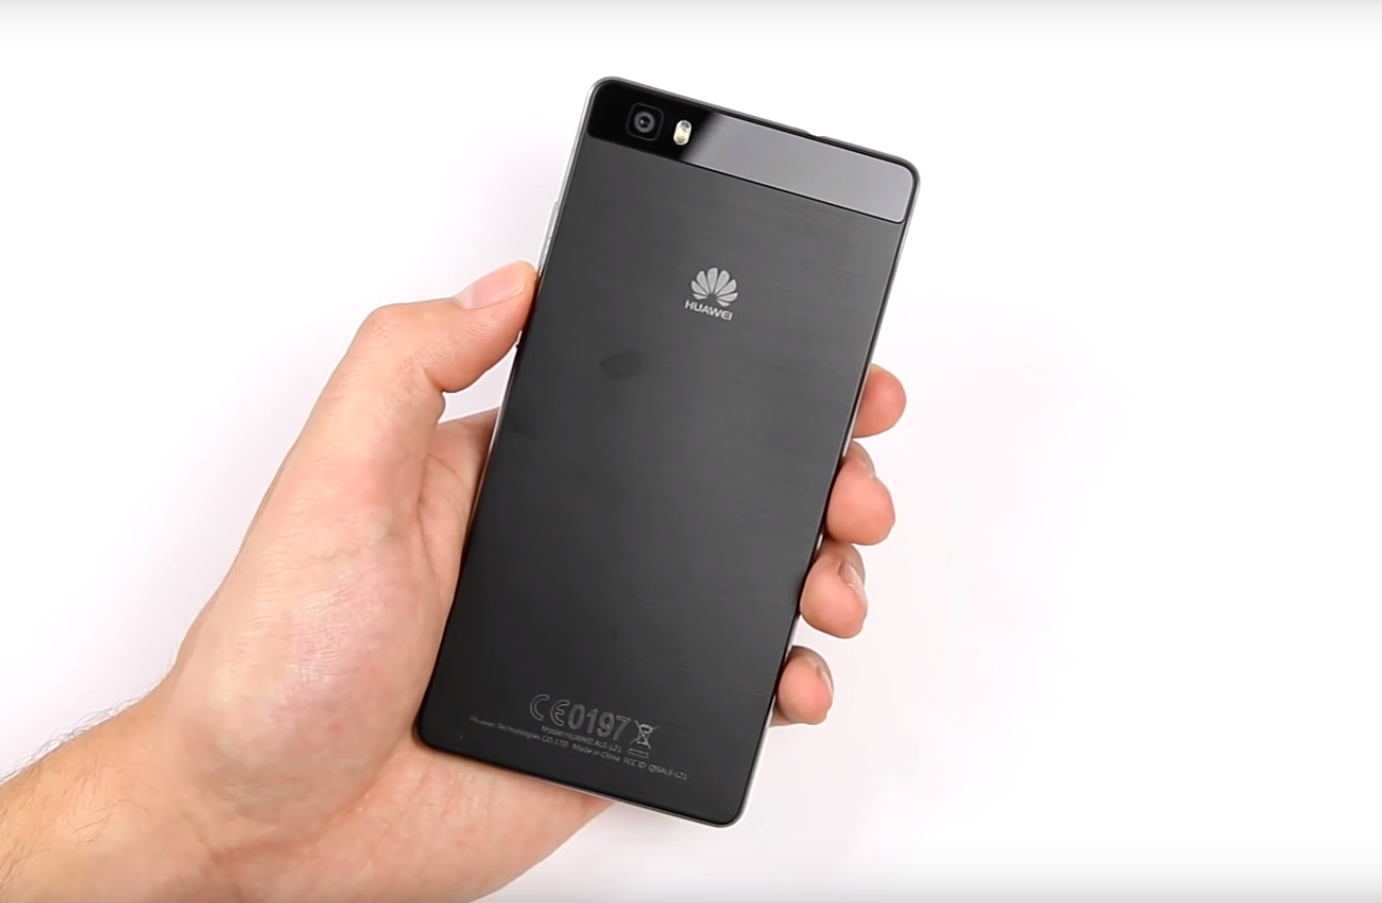 Huawei P8 Lite held in hand, black phone, white background